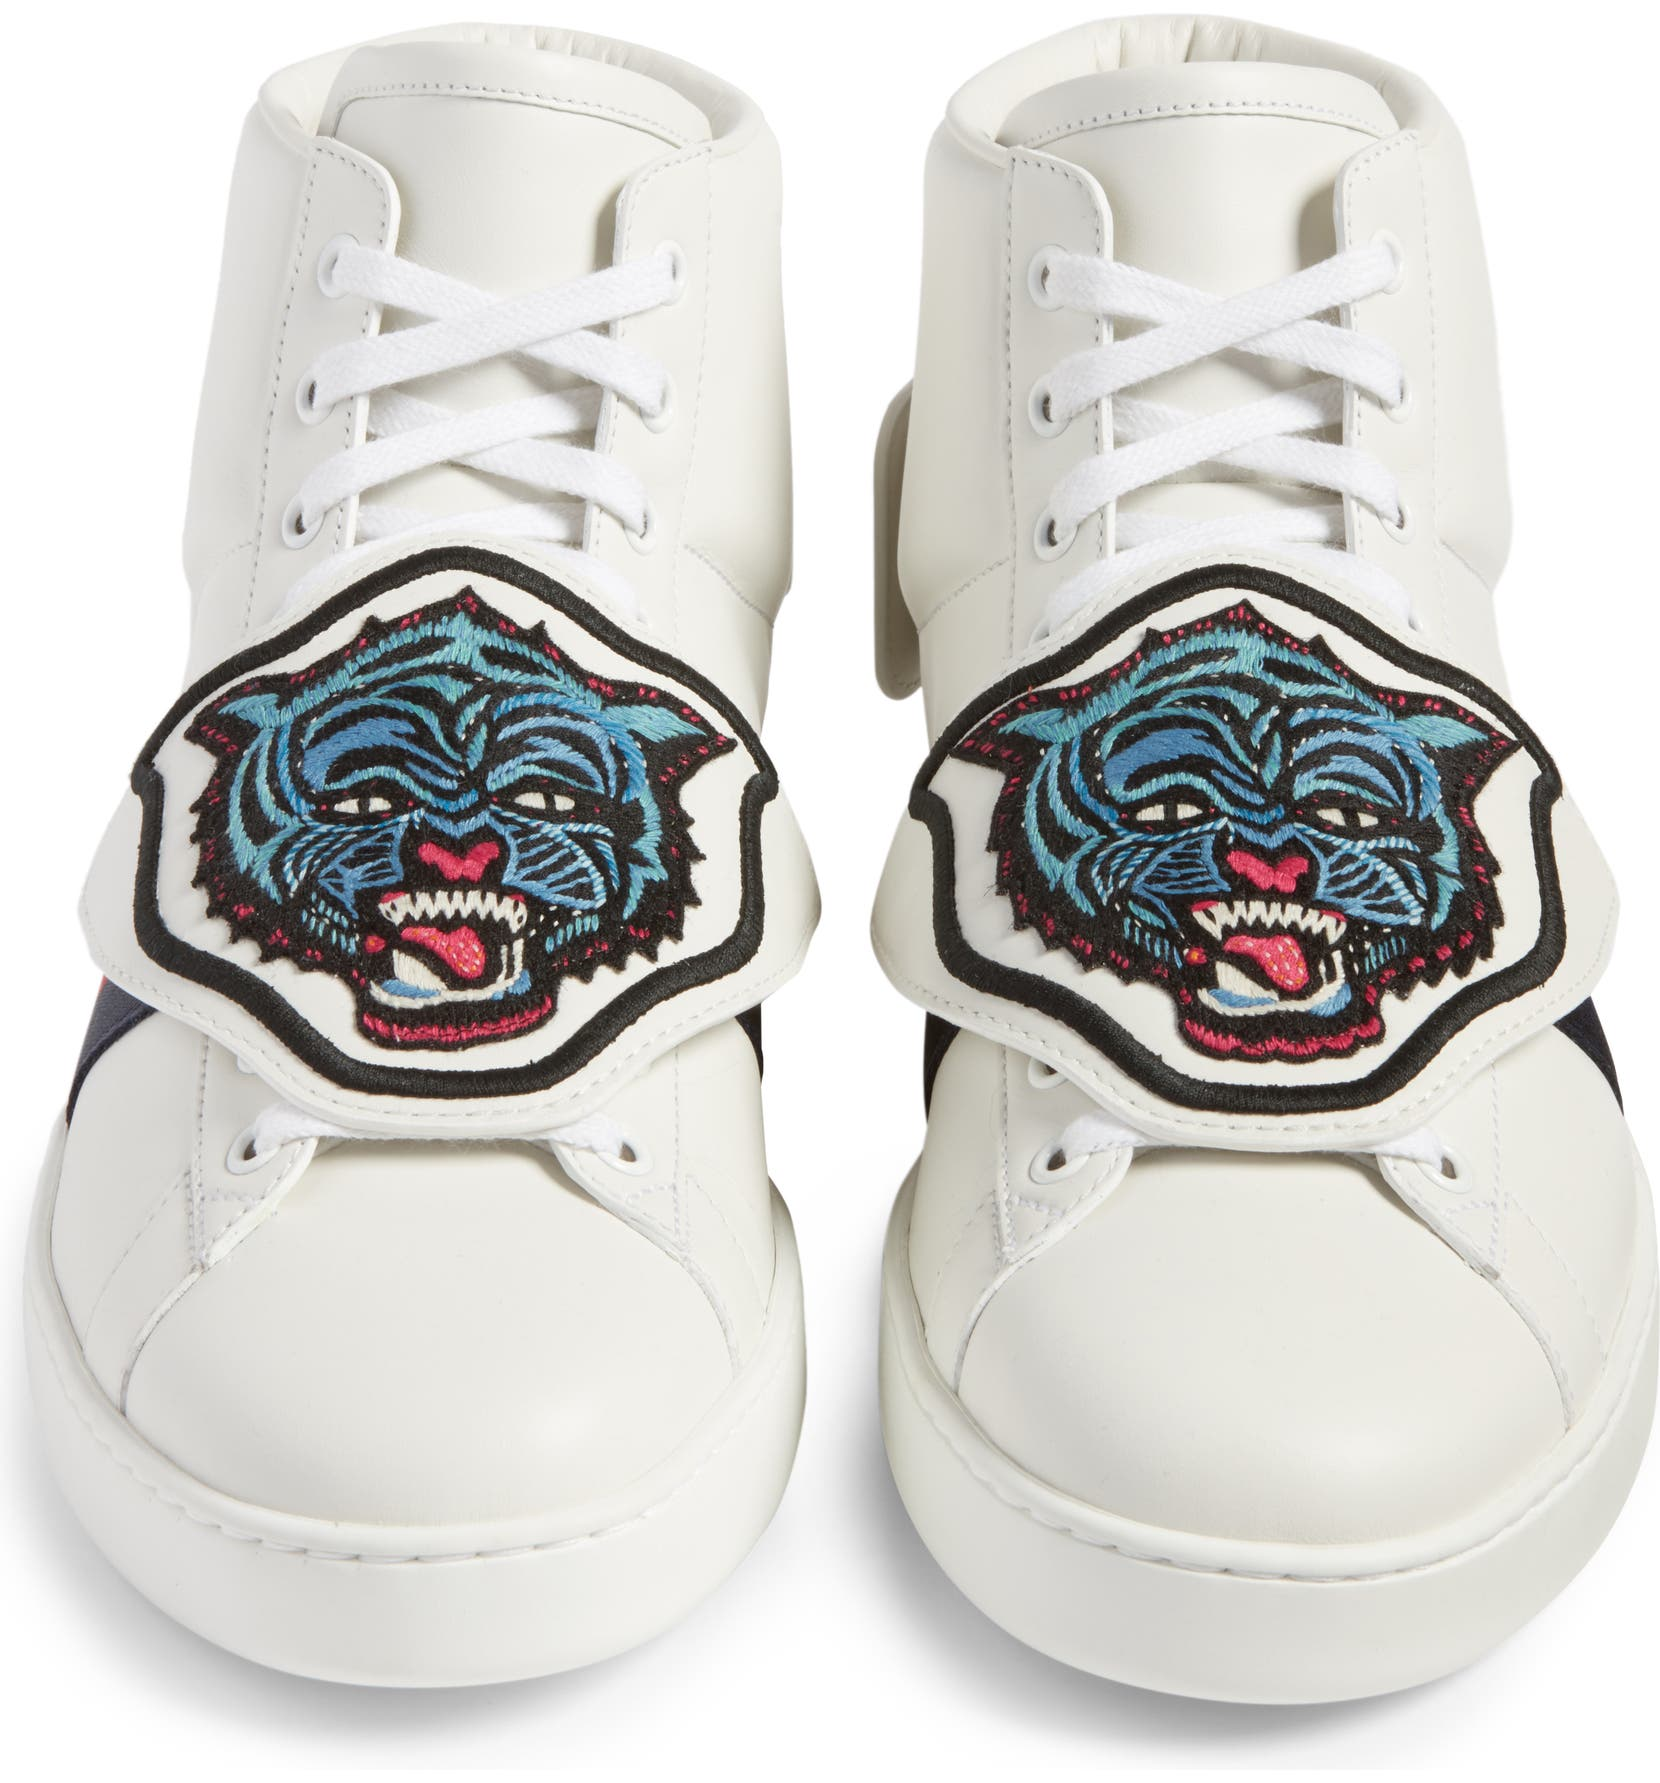 7cee0354c2e Gucci New Ace Jaguar Embroidered Patch High Top Sneaker (Men ...